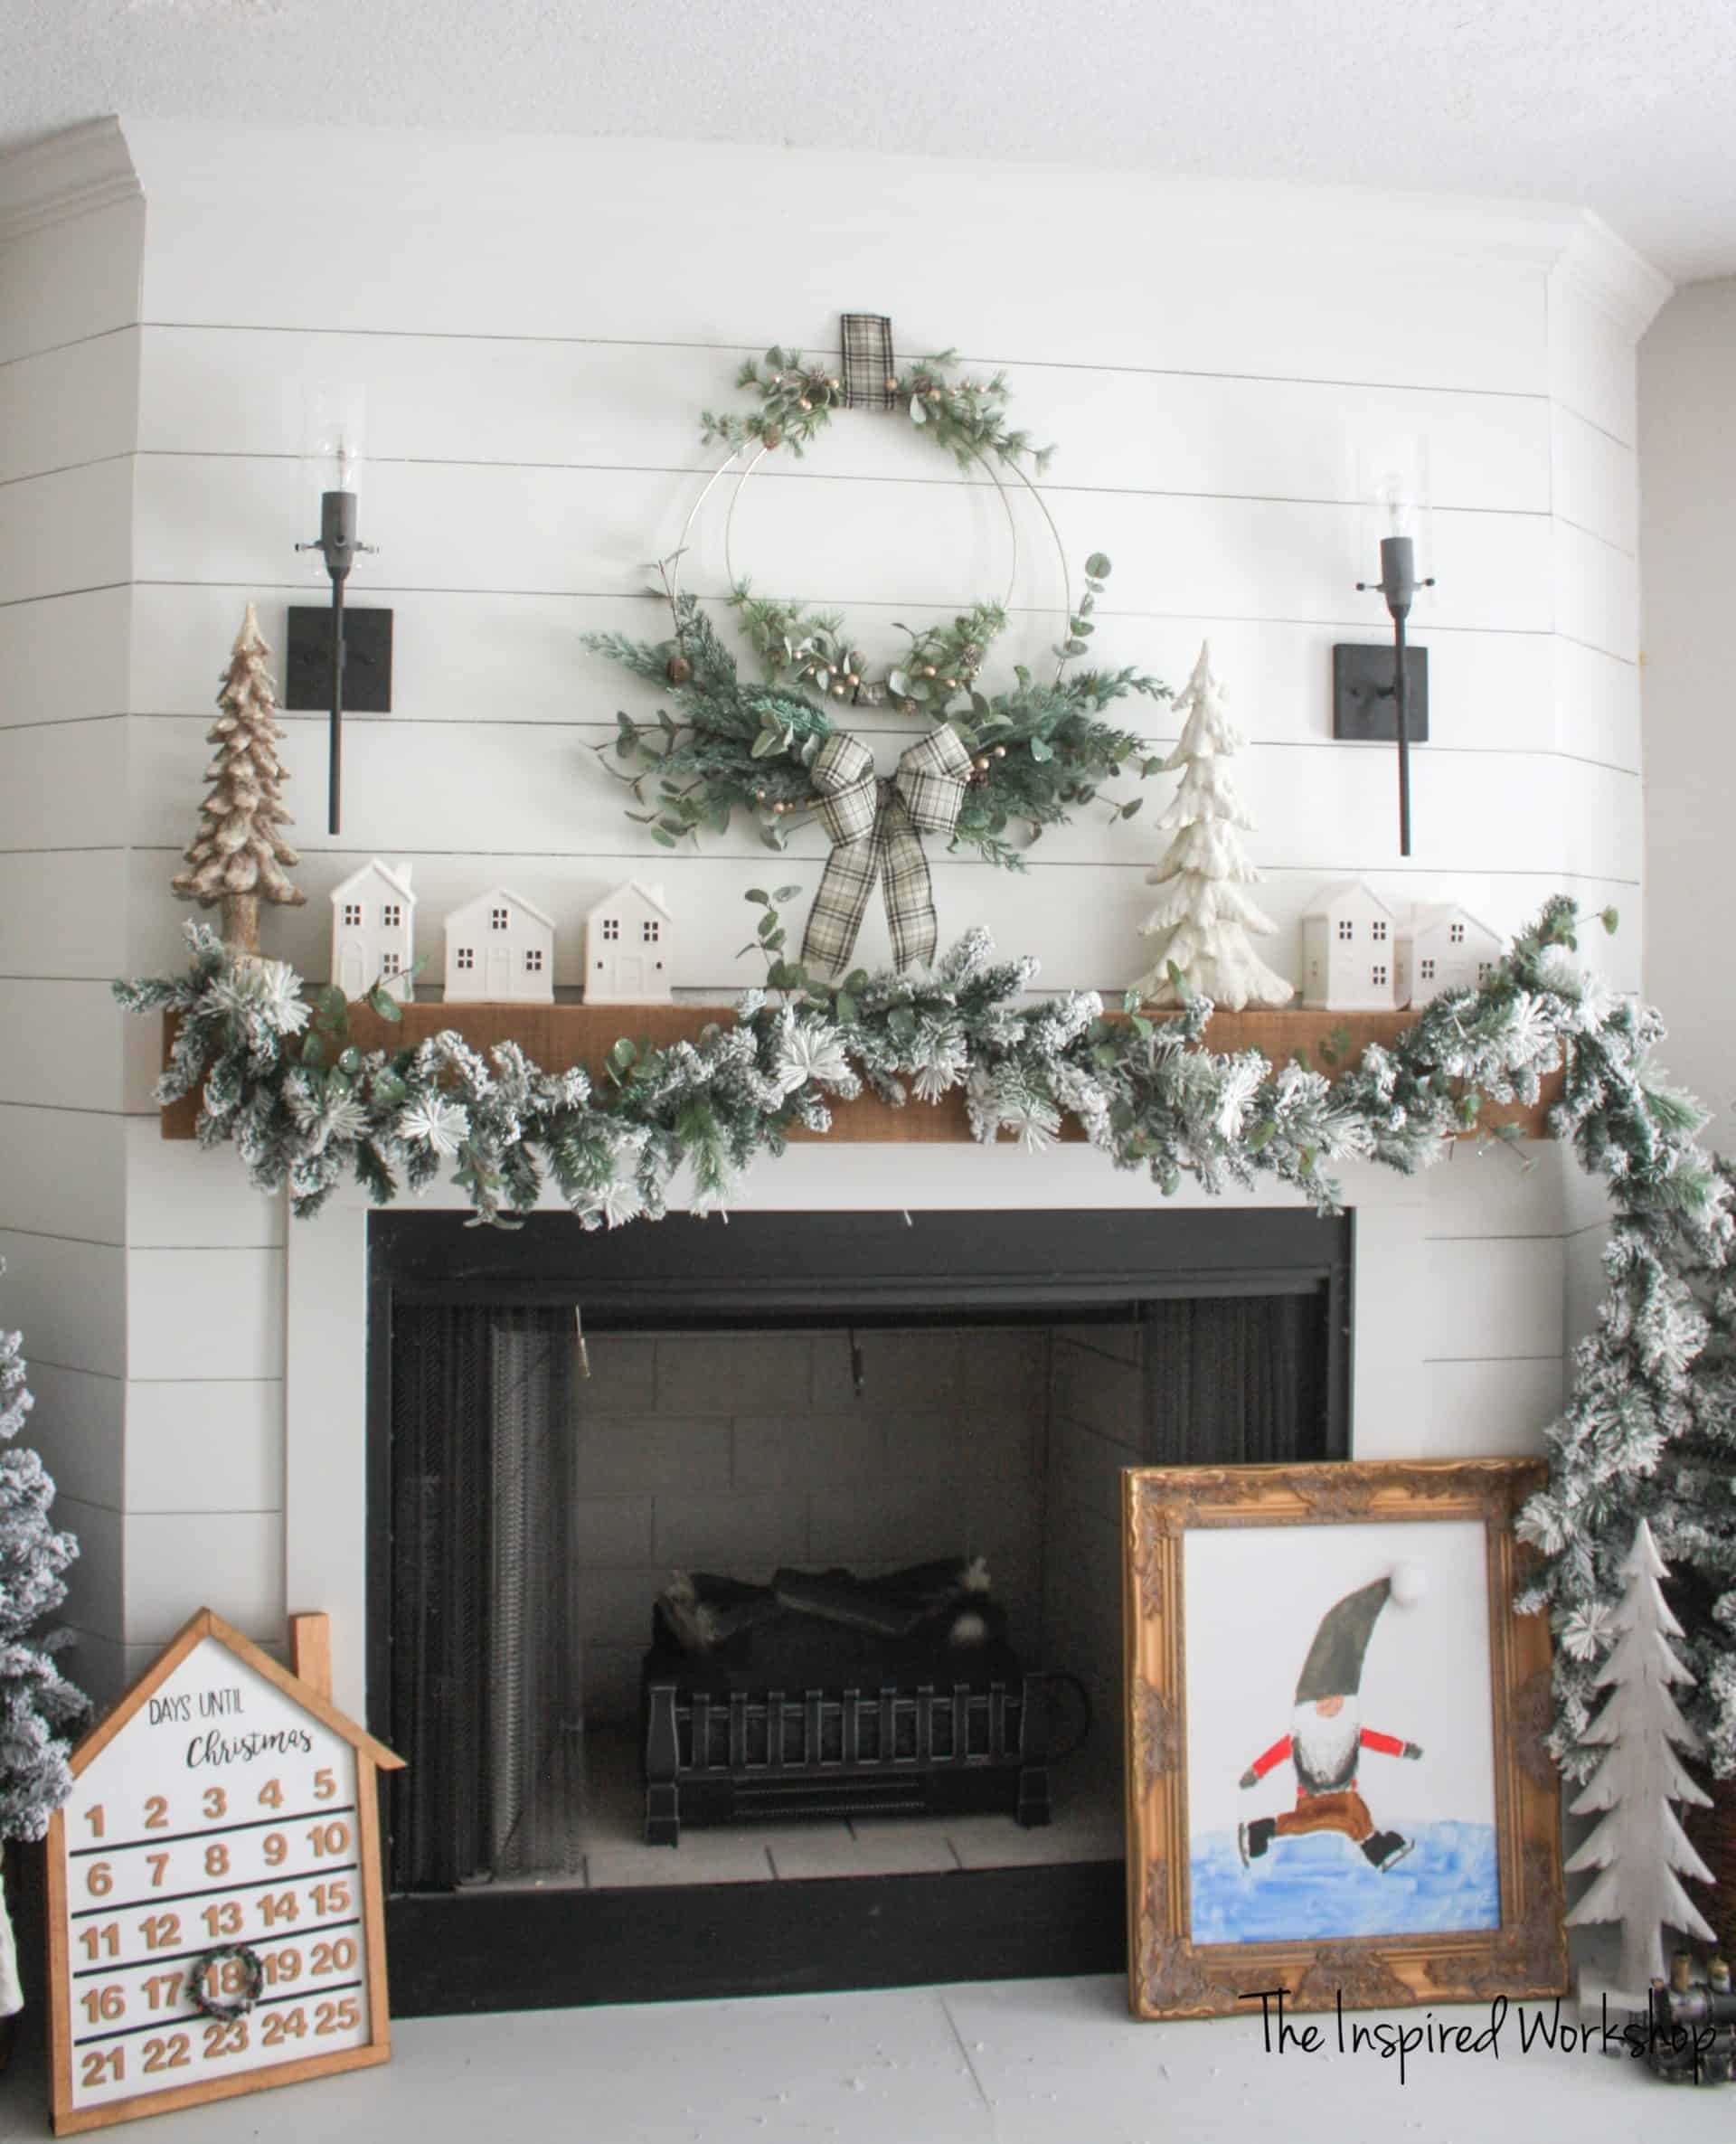 DIY WInter Christmas Wreath above mantel